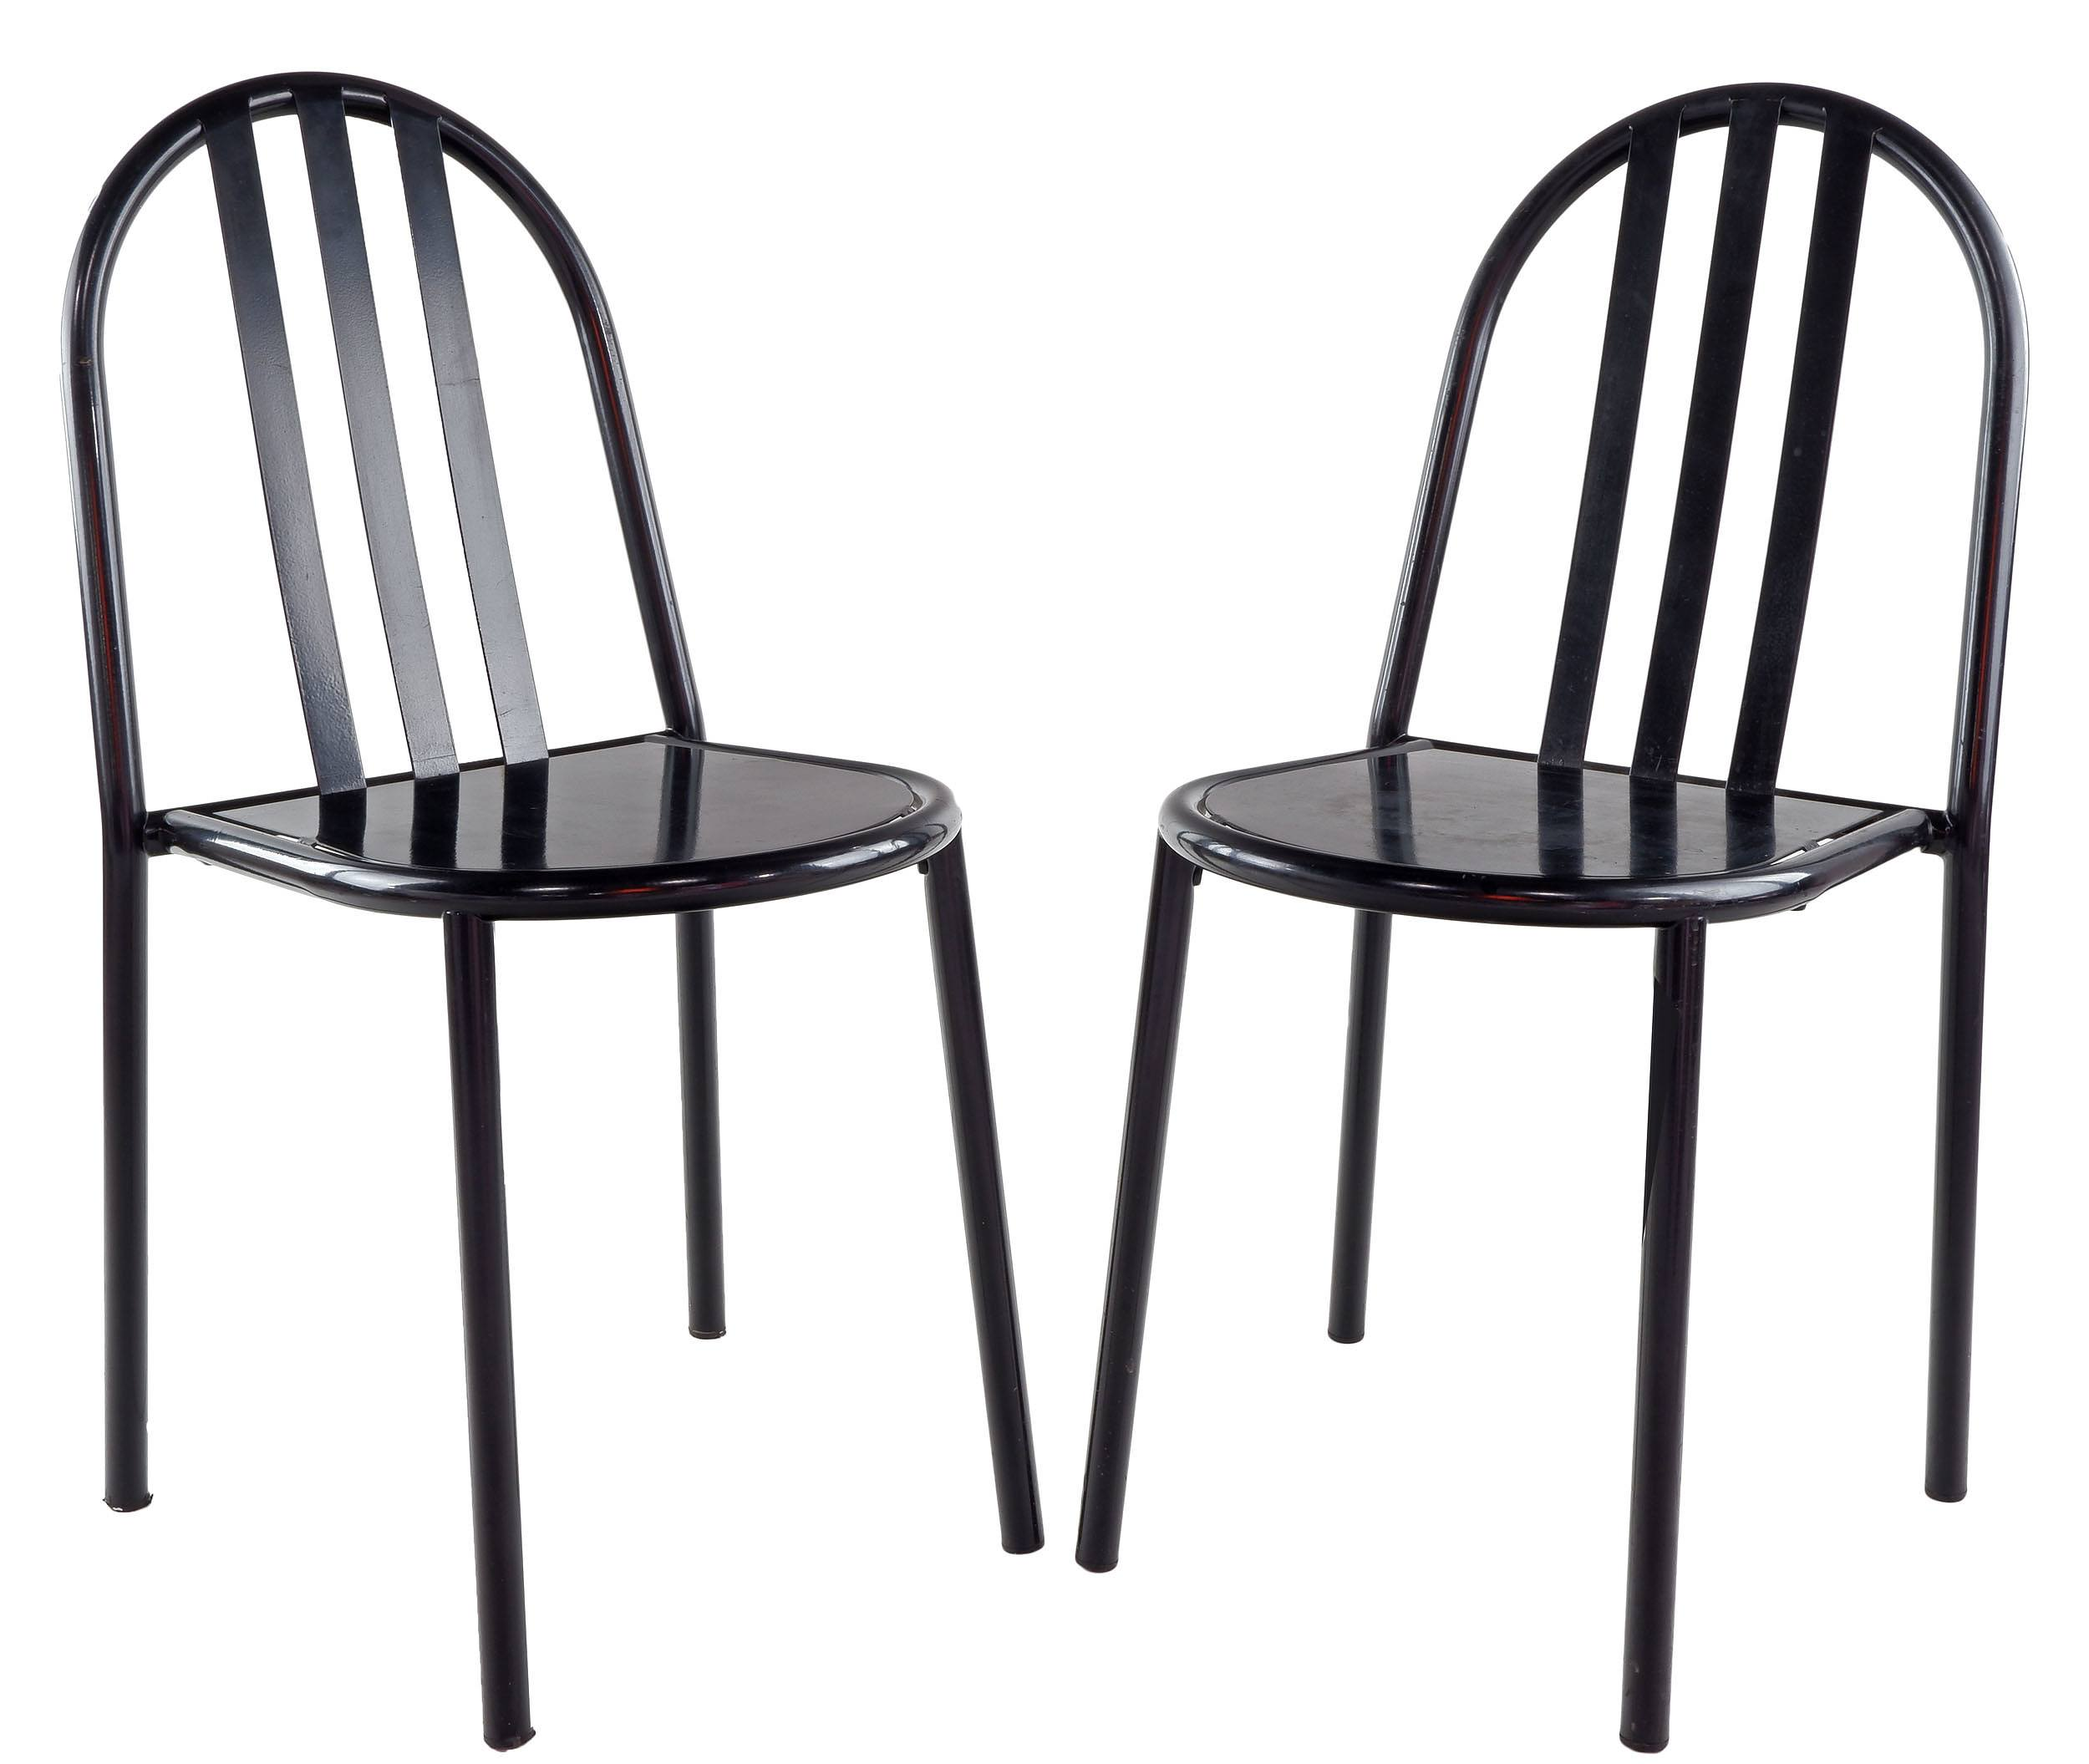 'Robert Mallet-Stevens (French 1886-1945) Designed Pair of Steel Painted Side Chairs'